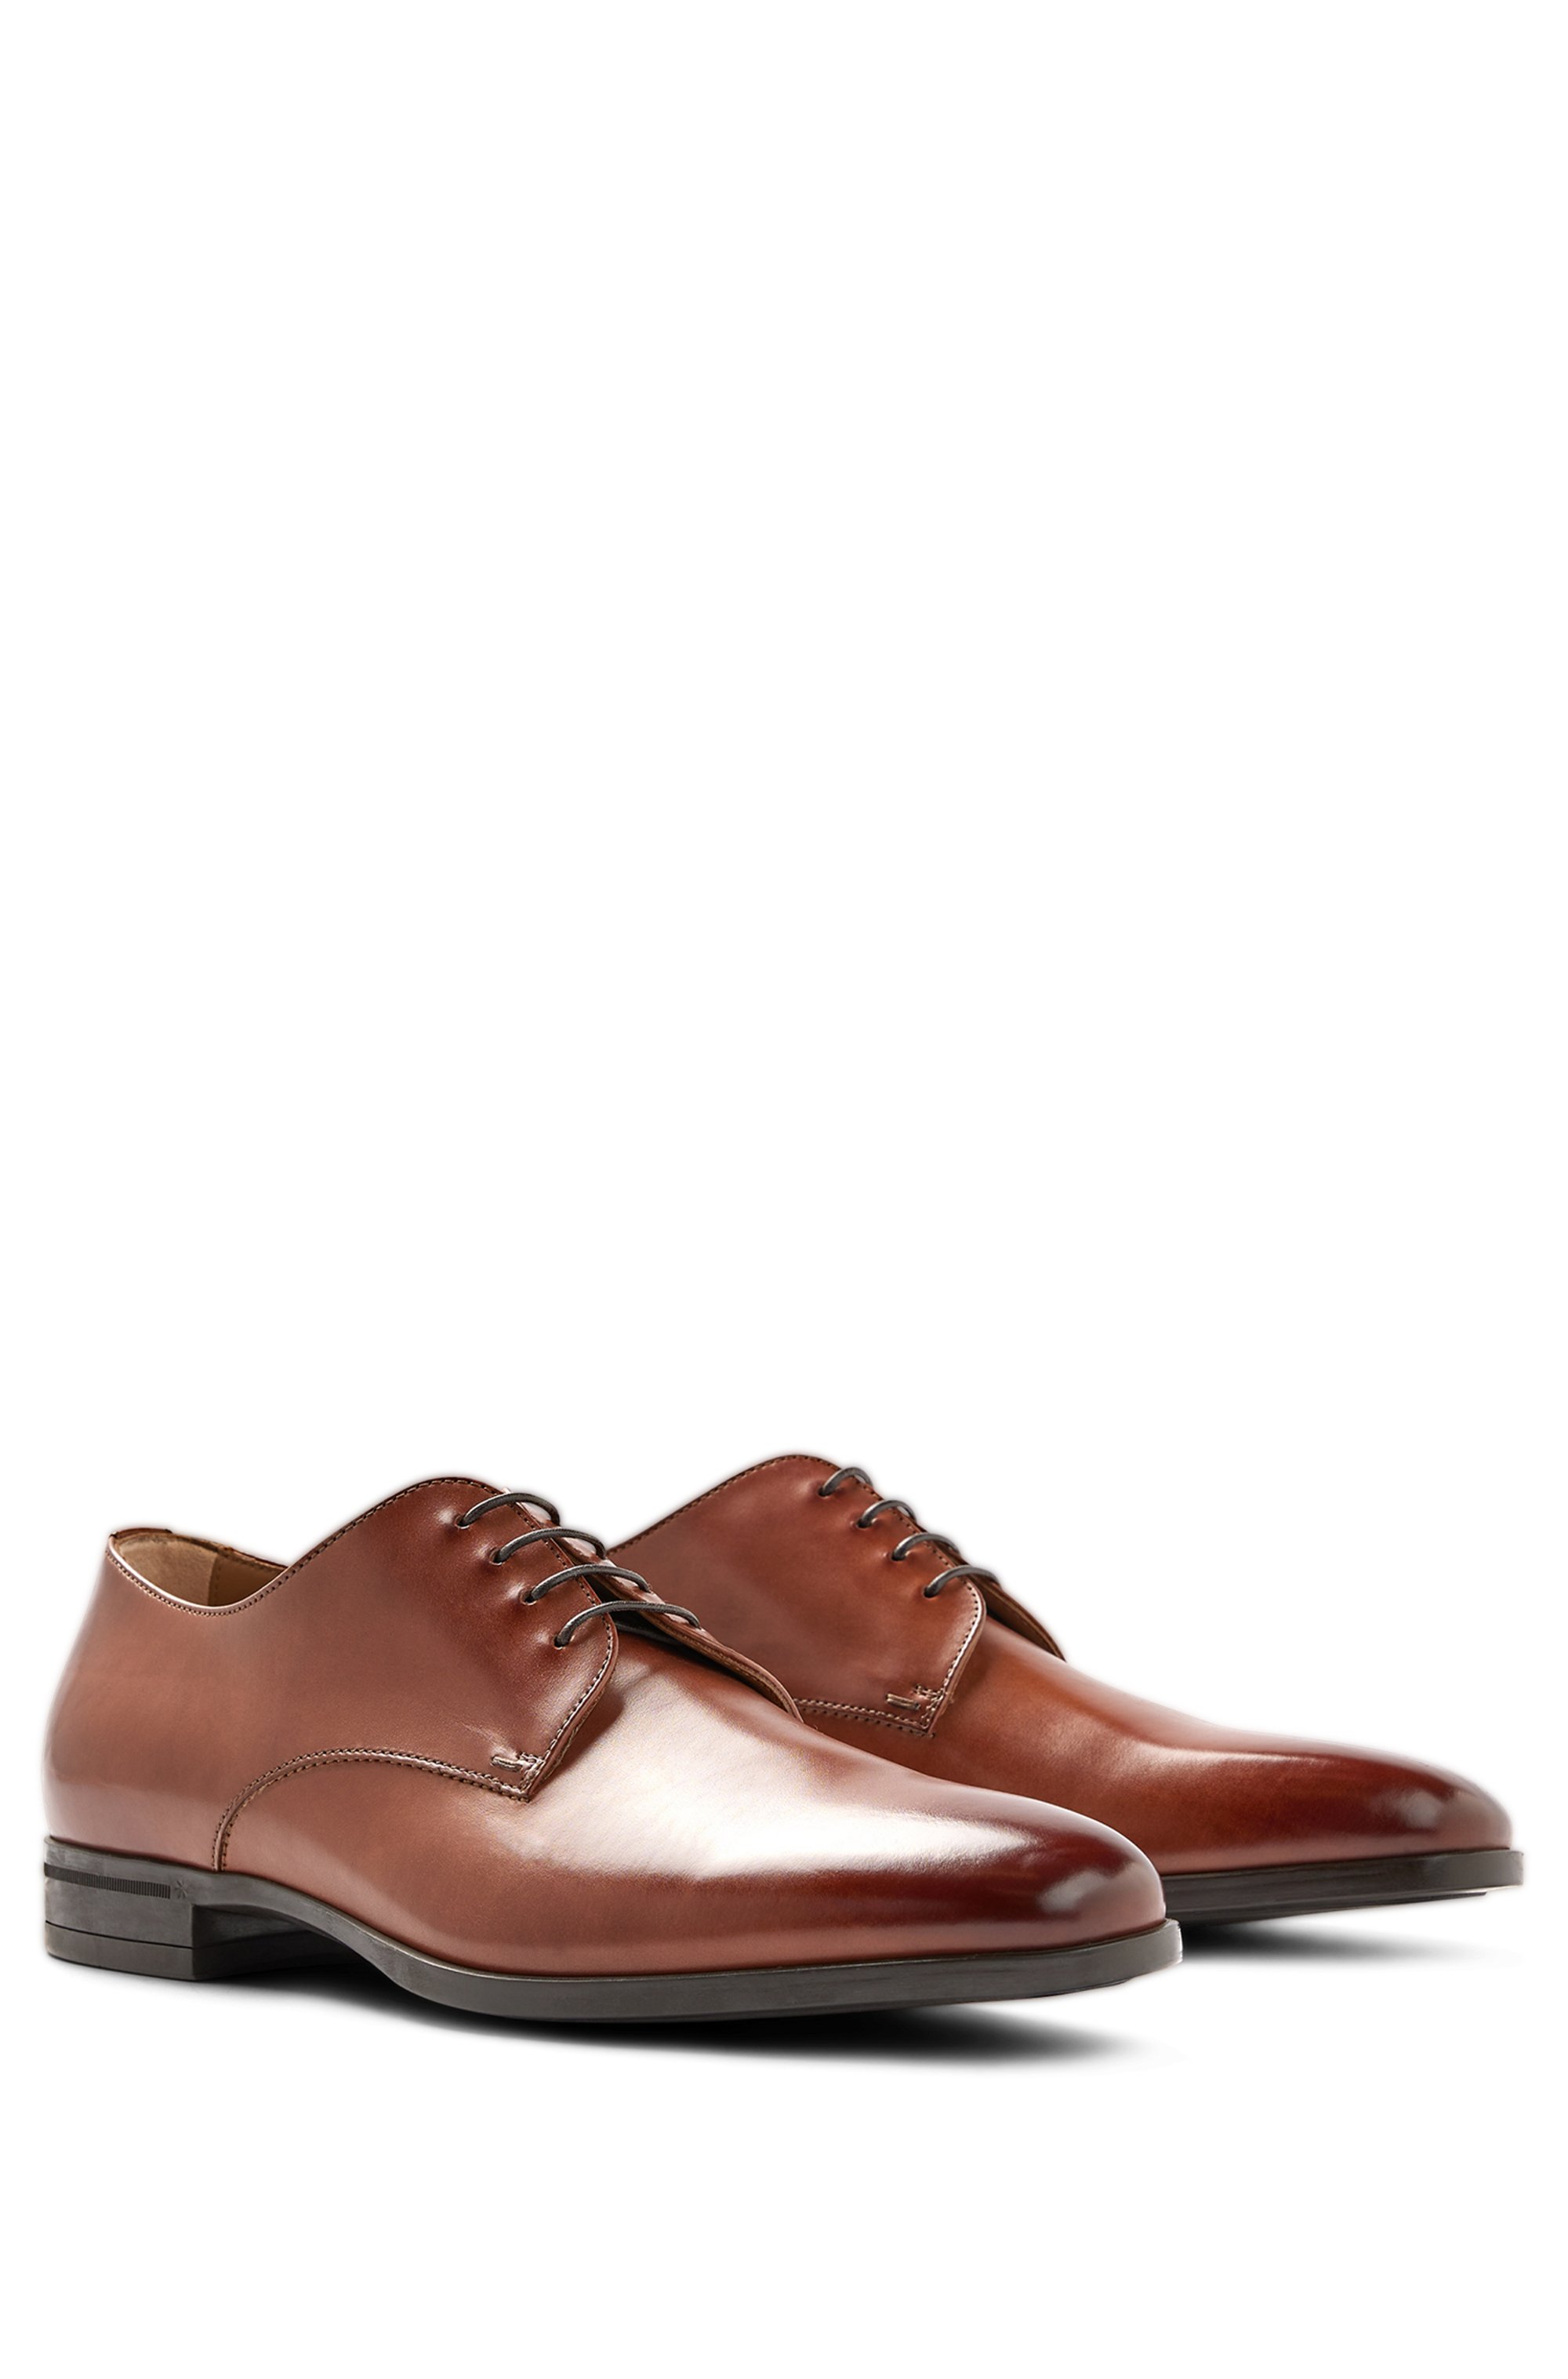 Italian-made Derby shoes in vegetable-tanned leather